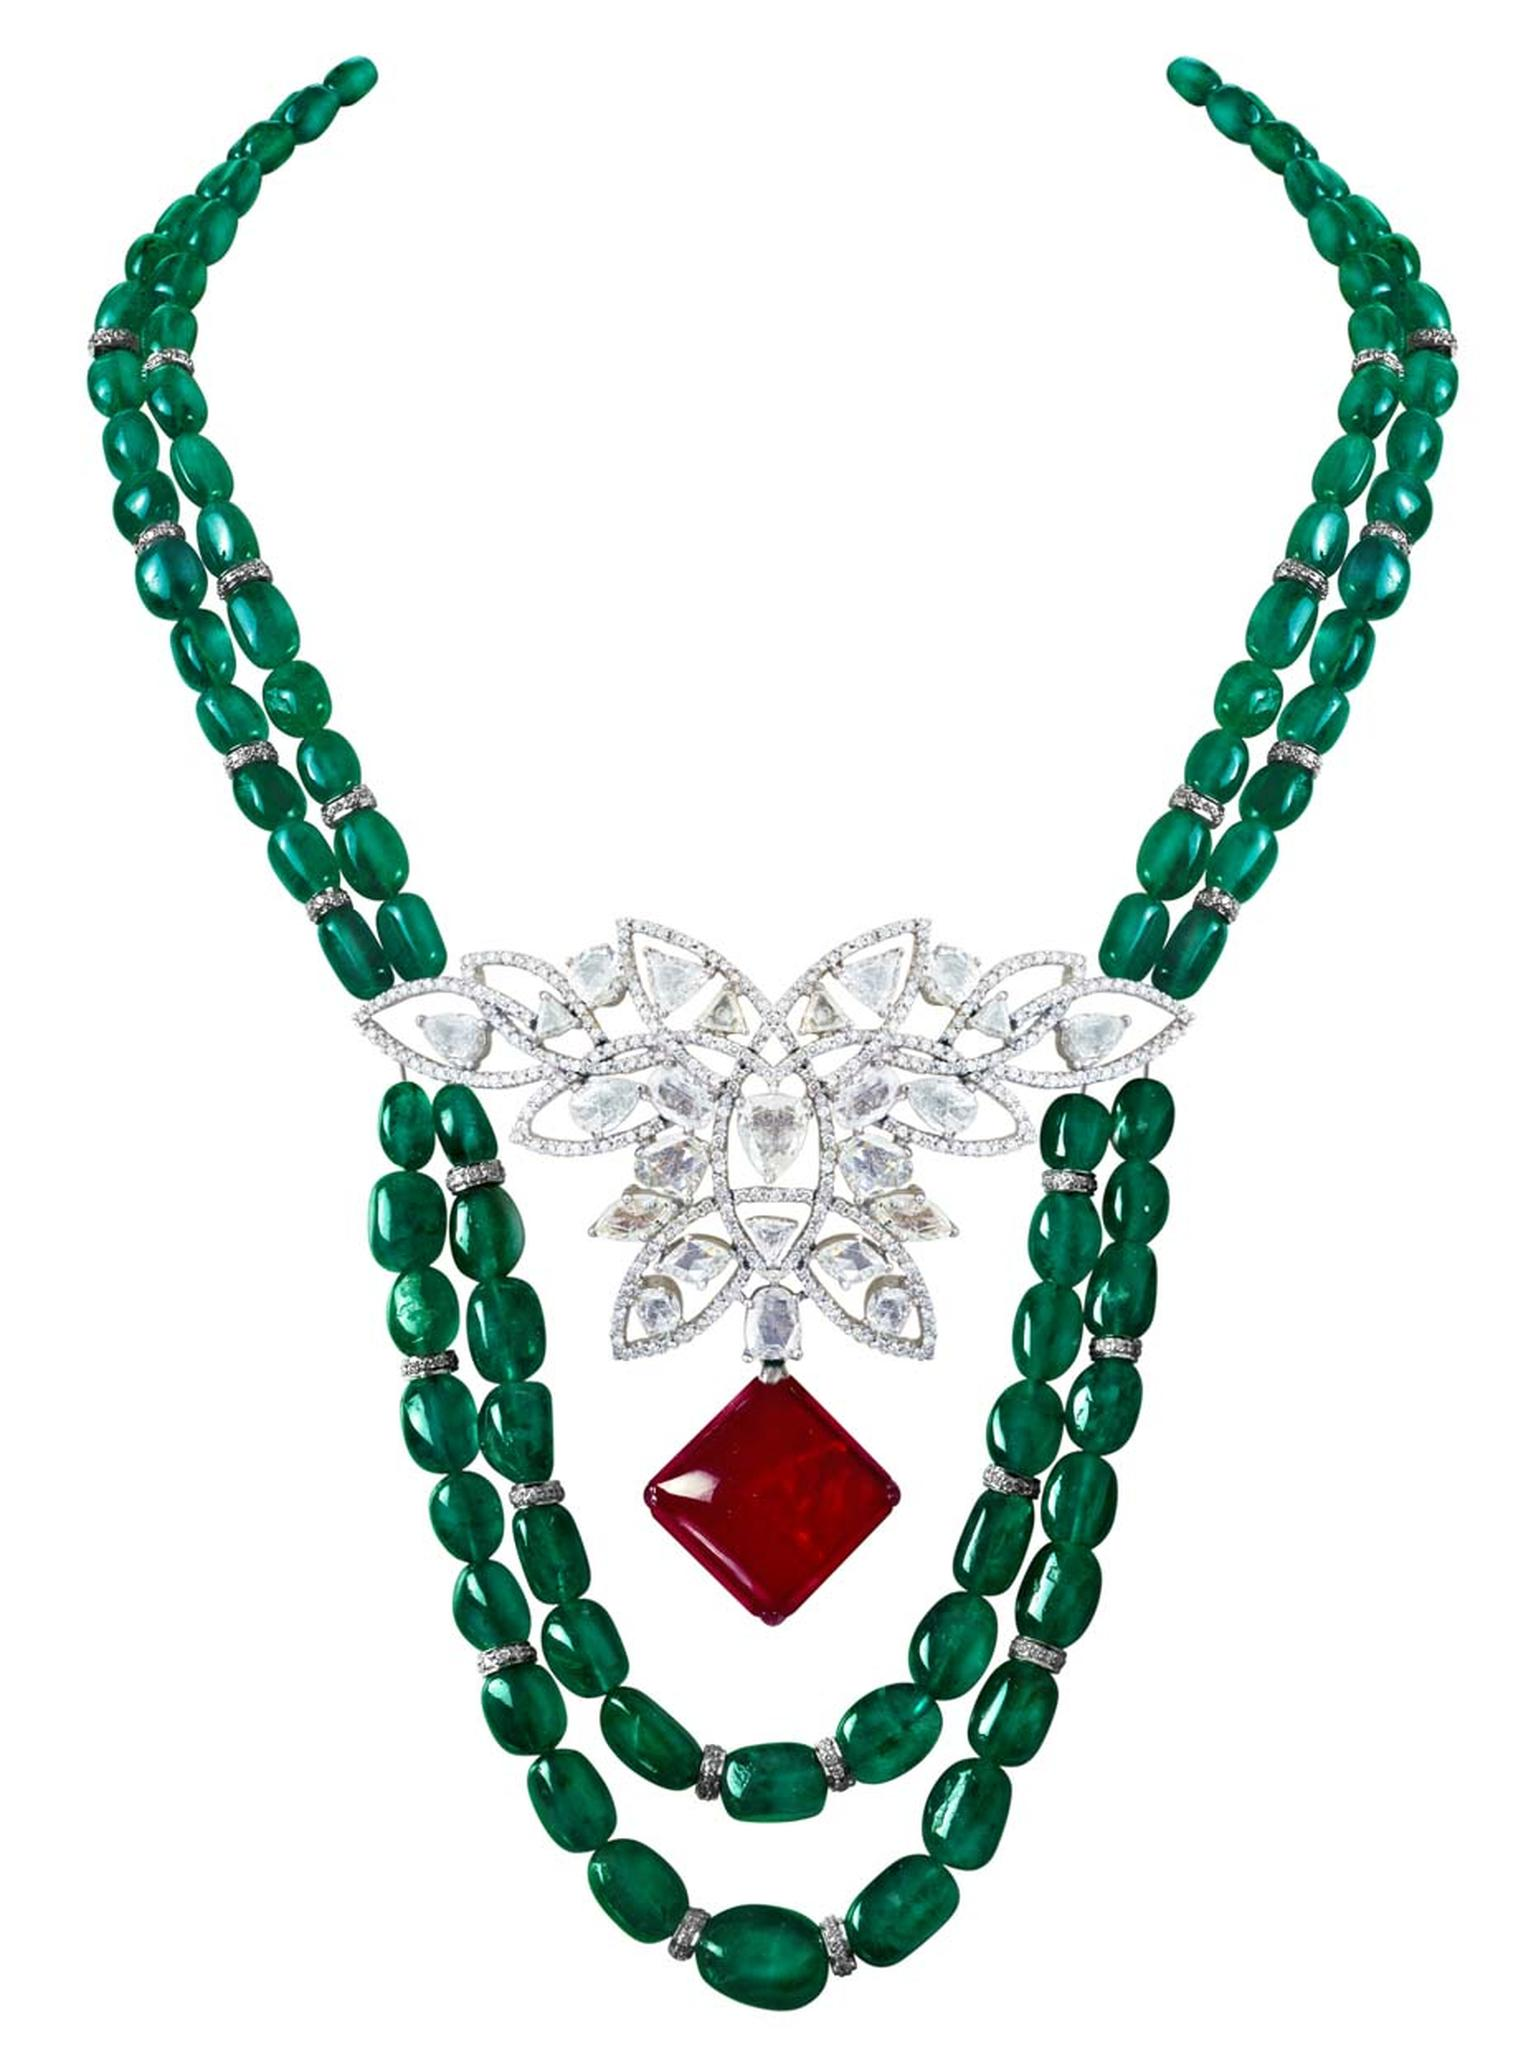 MINAWALA Festival of Emeralds collection necklace in white gold with diamonds, emeralds and a ruby